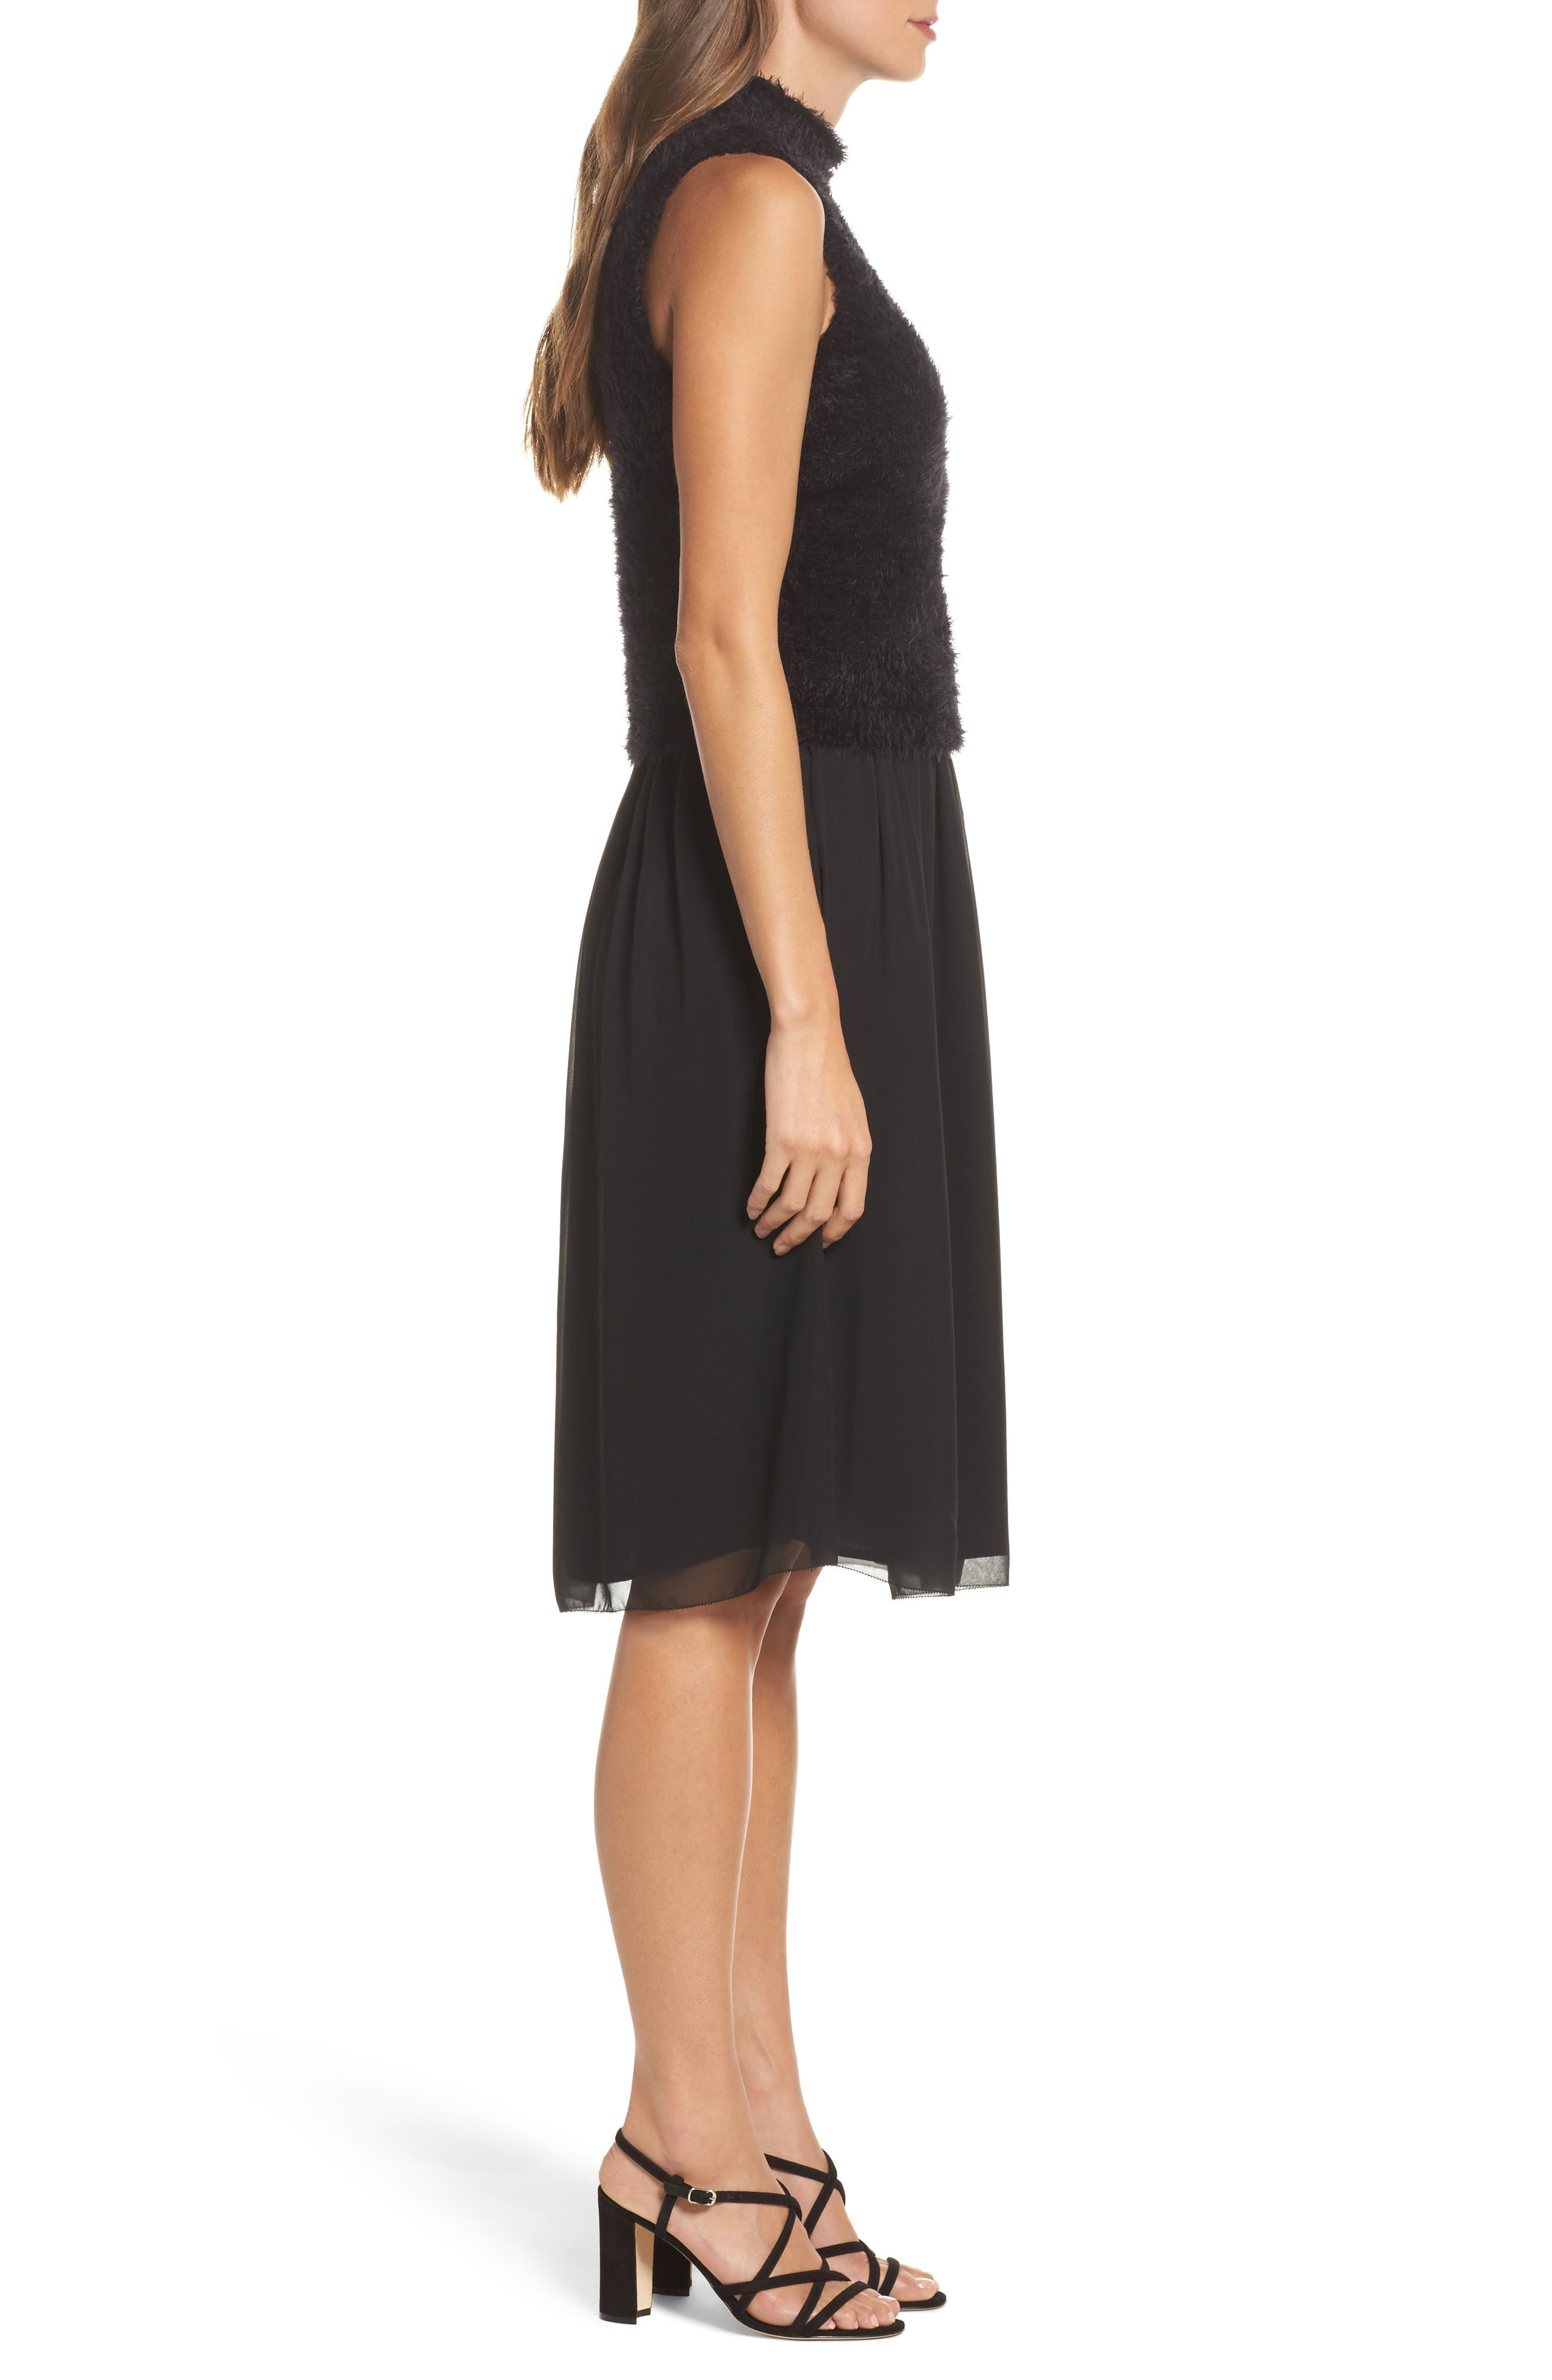 NIC + ZOE Lace-Up Dress,                             Alternate thumbnail 3, color,                             004